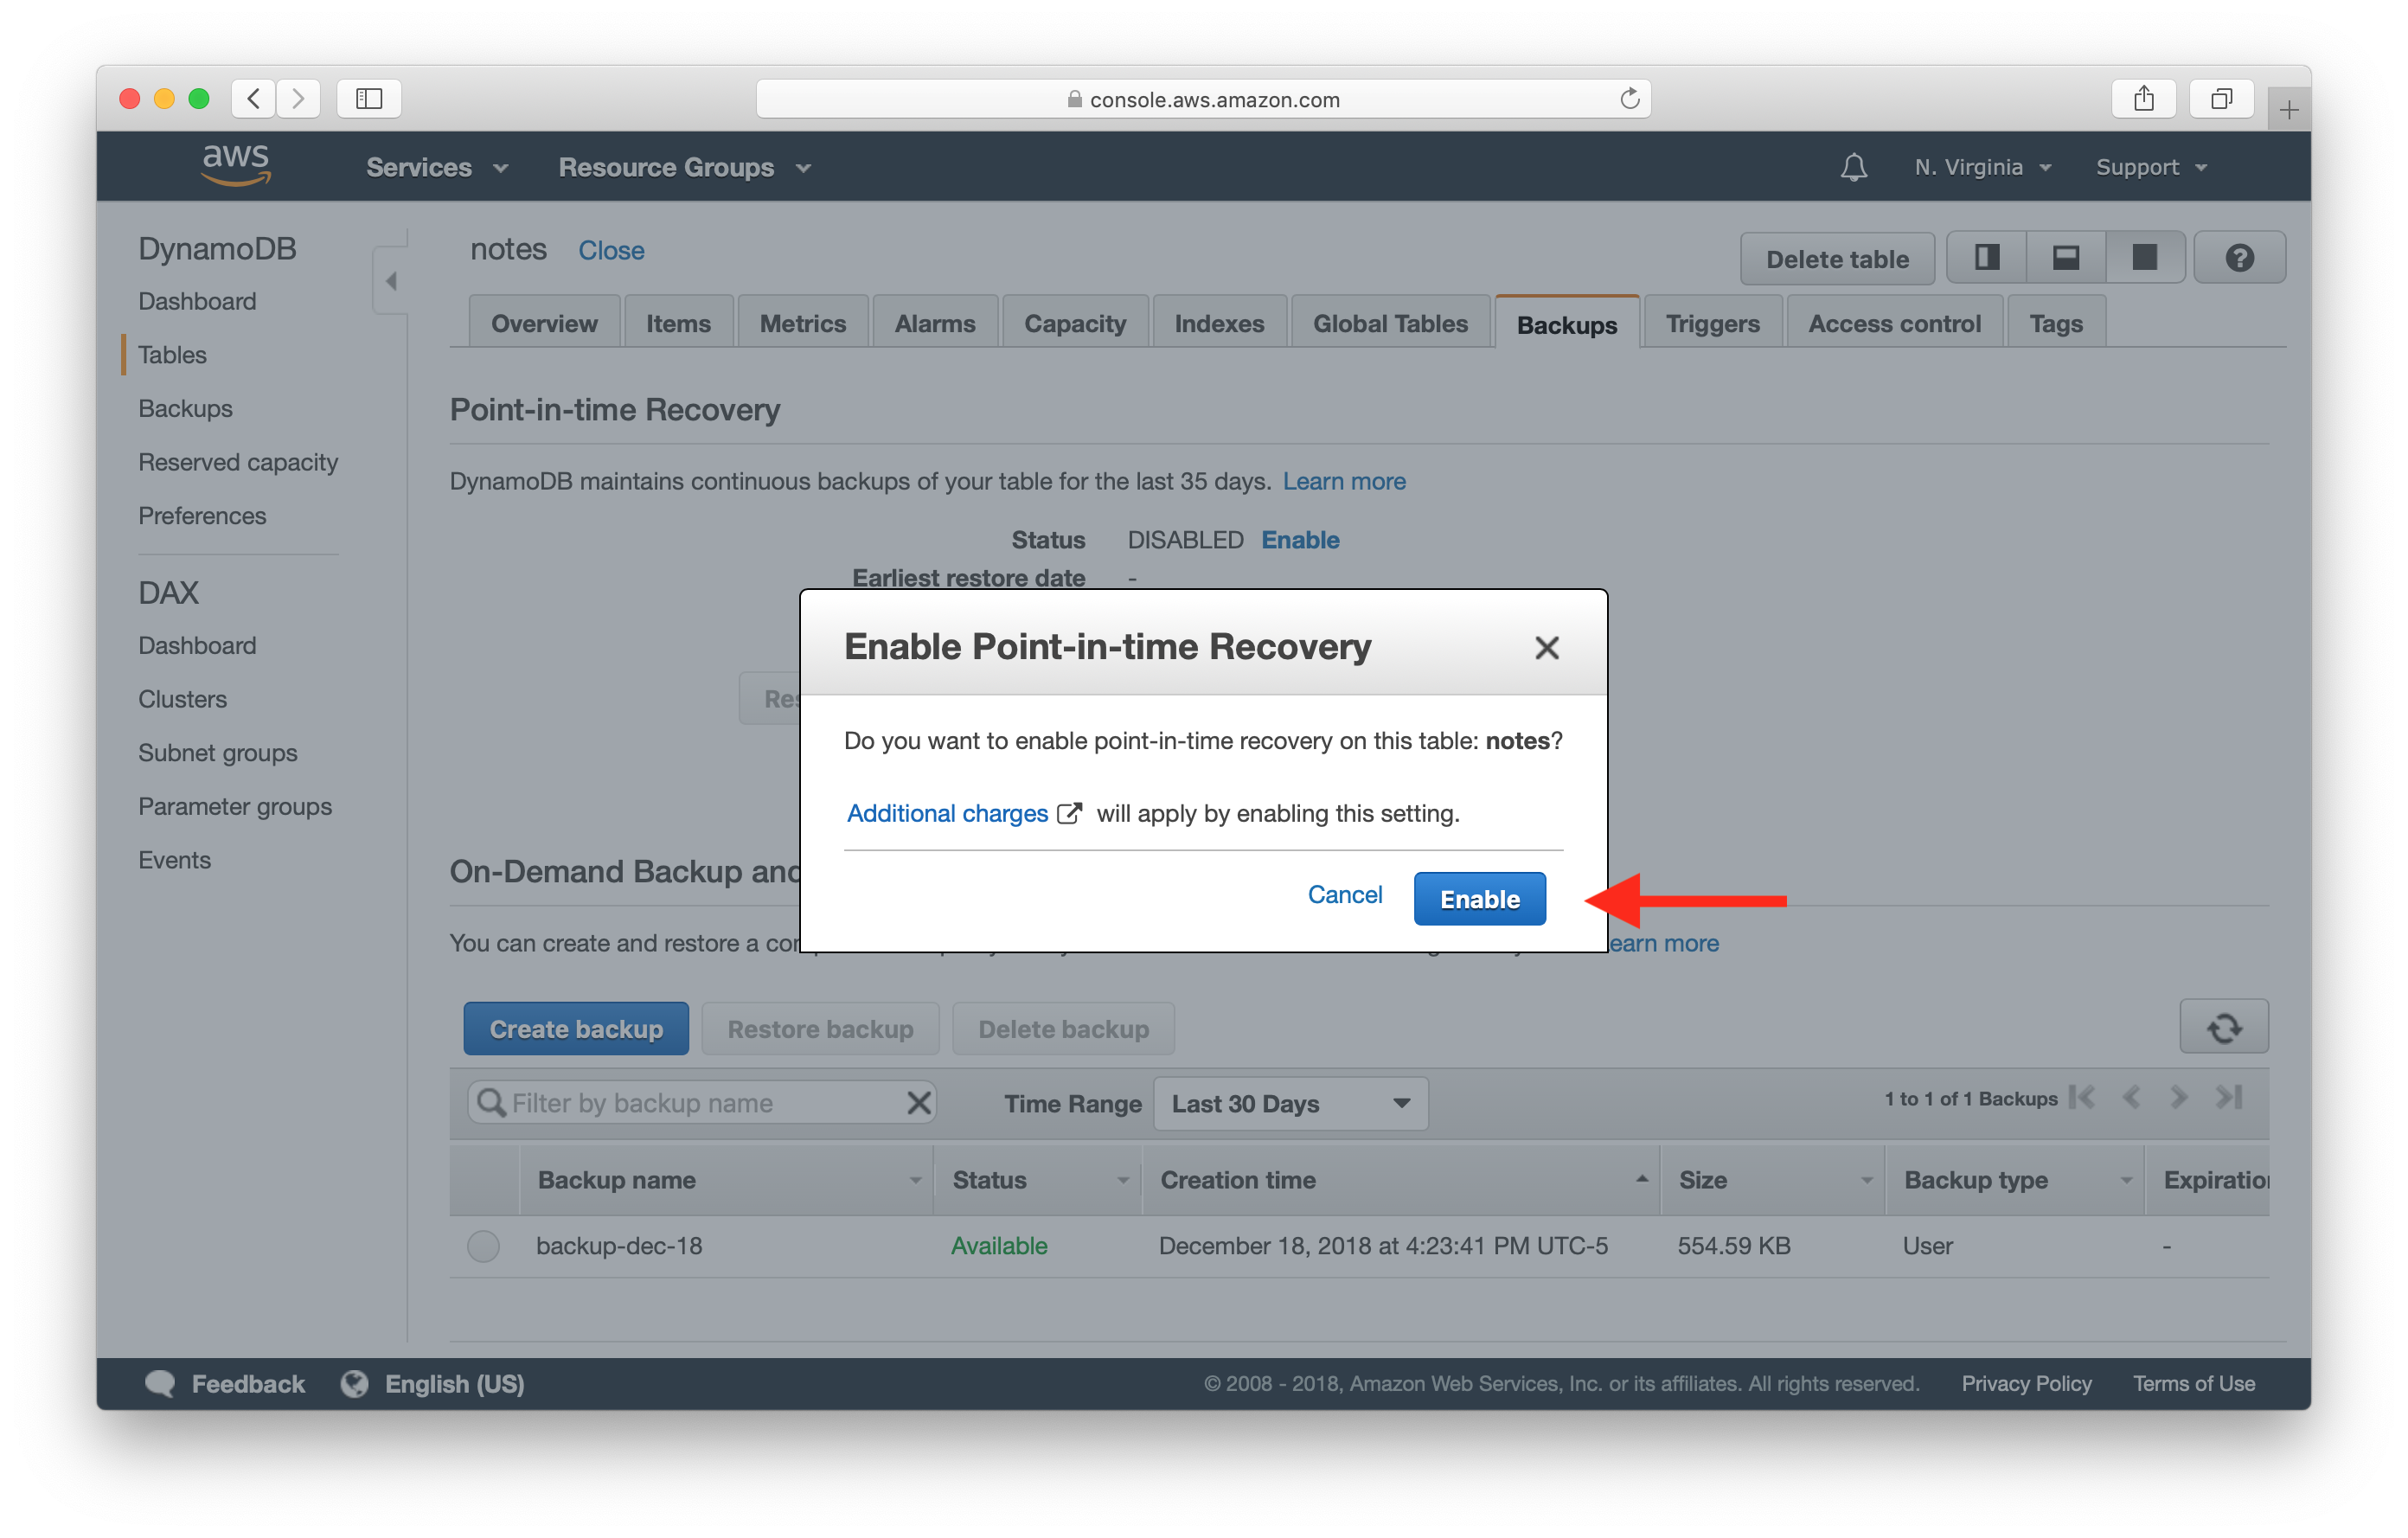 Confirm Enable DynamoDB Point-in-time Recovery screenshot